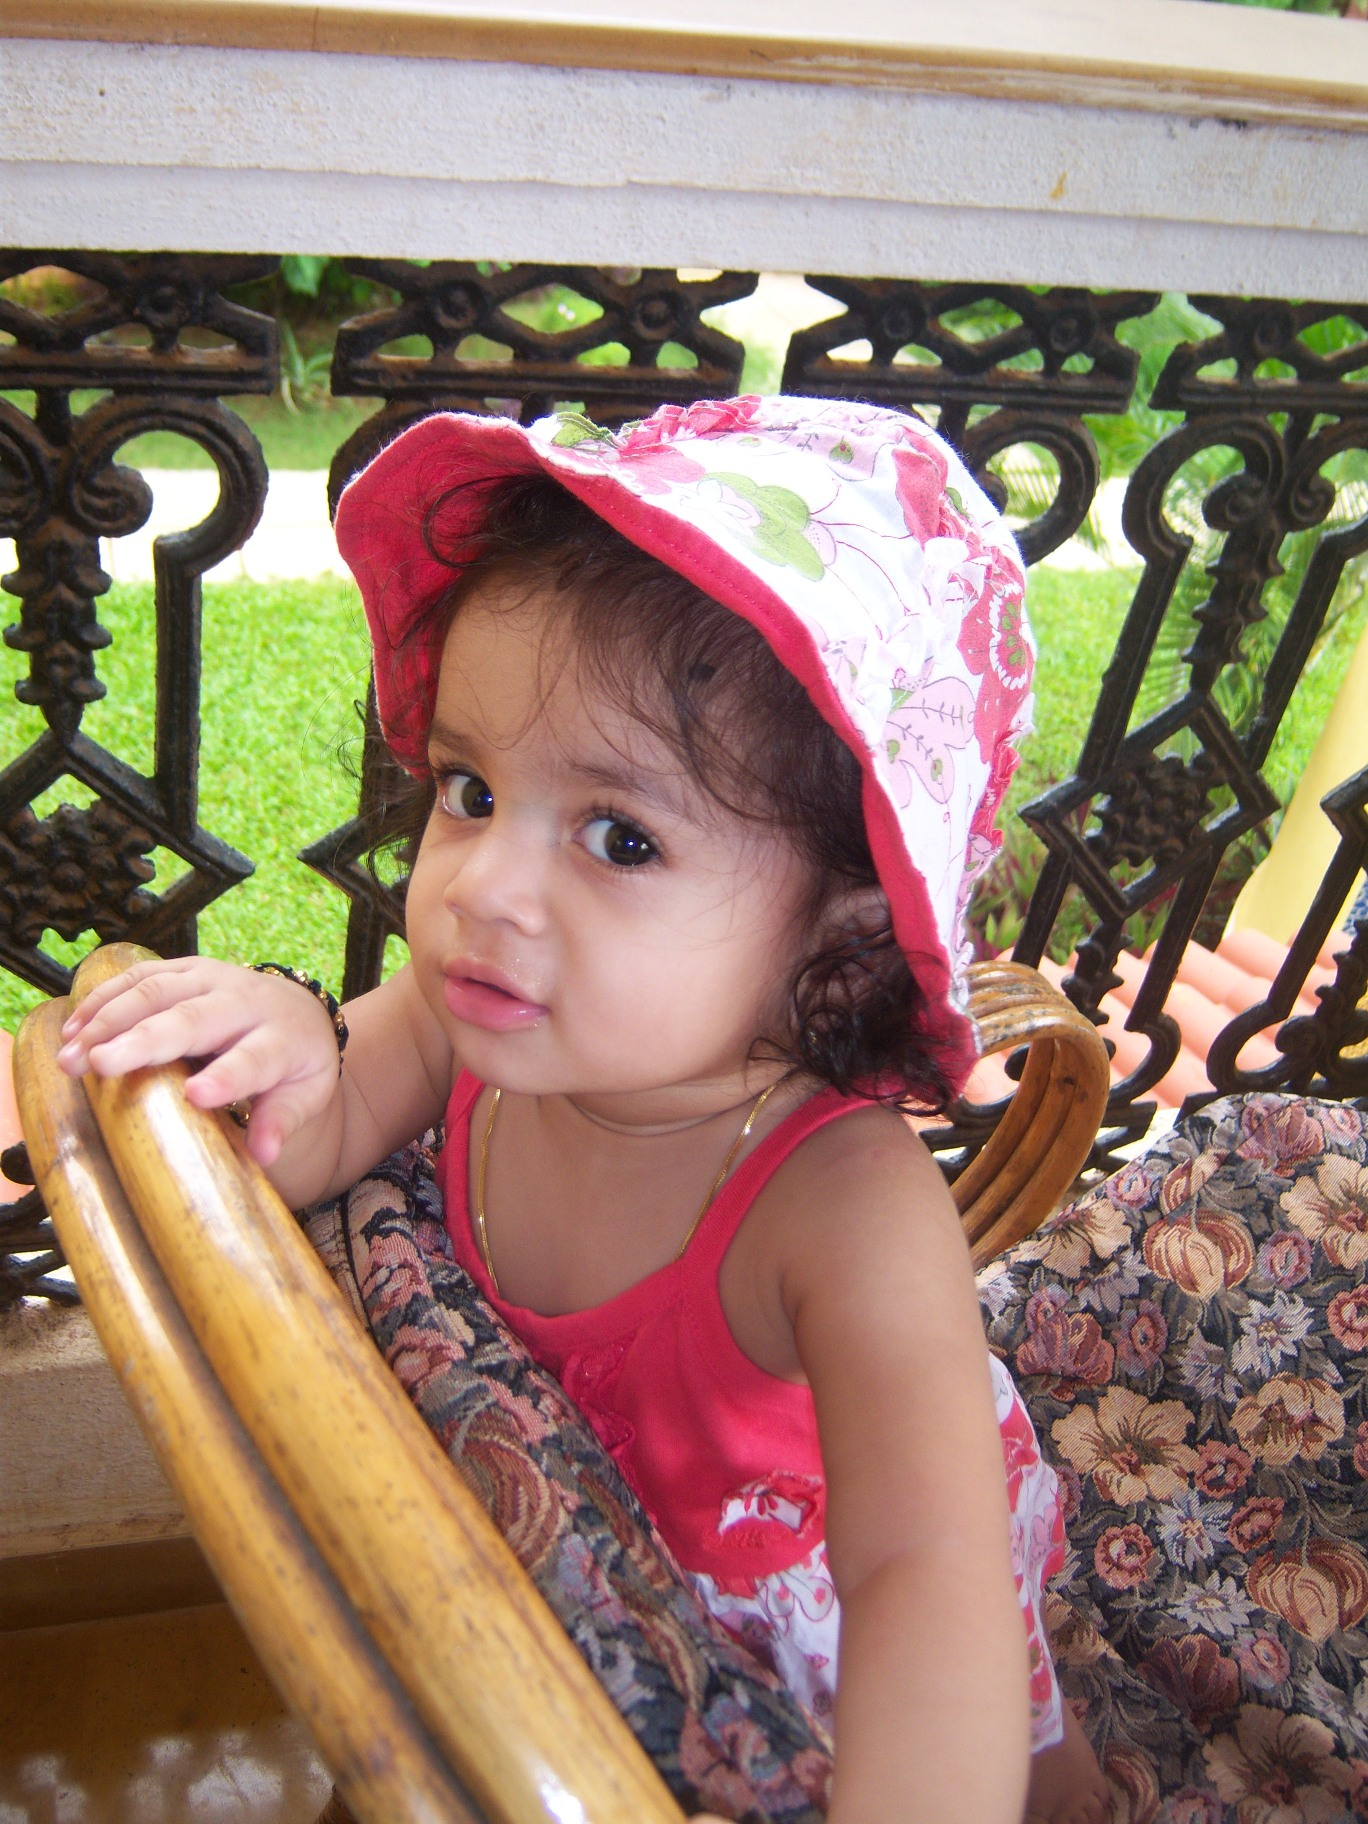 flower girl.JPG - I hope my new hat's in the frame...  in the balcony of our suite at Casa de Goa! Dressed for the ocassion!